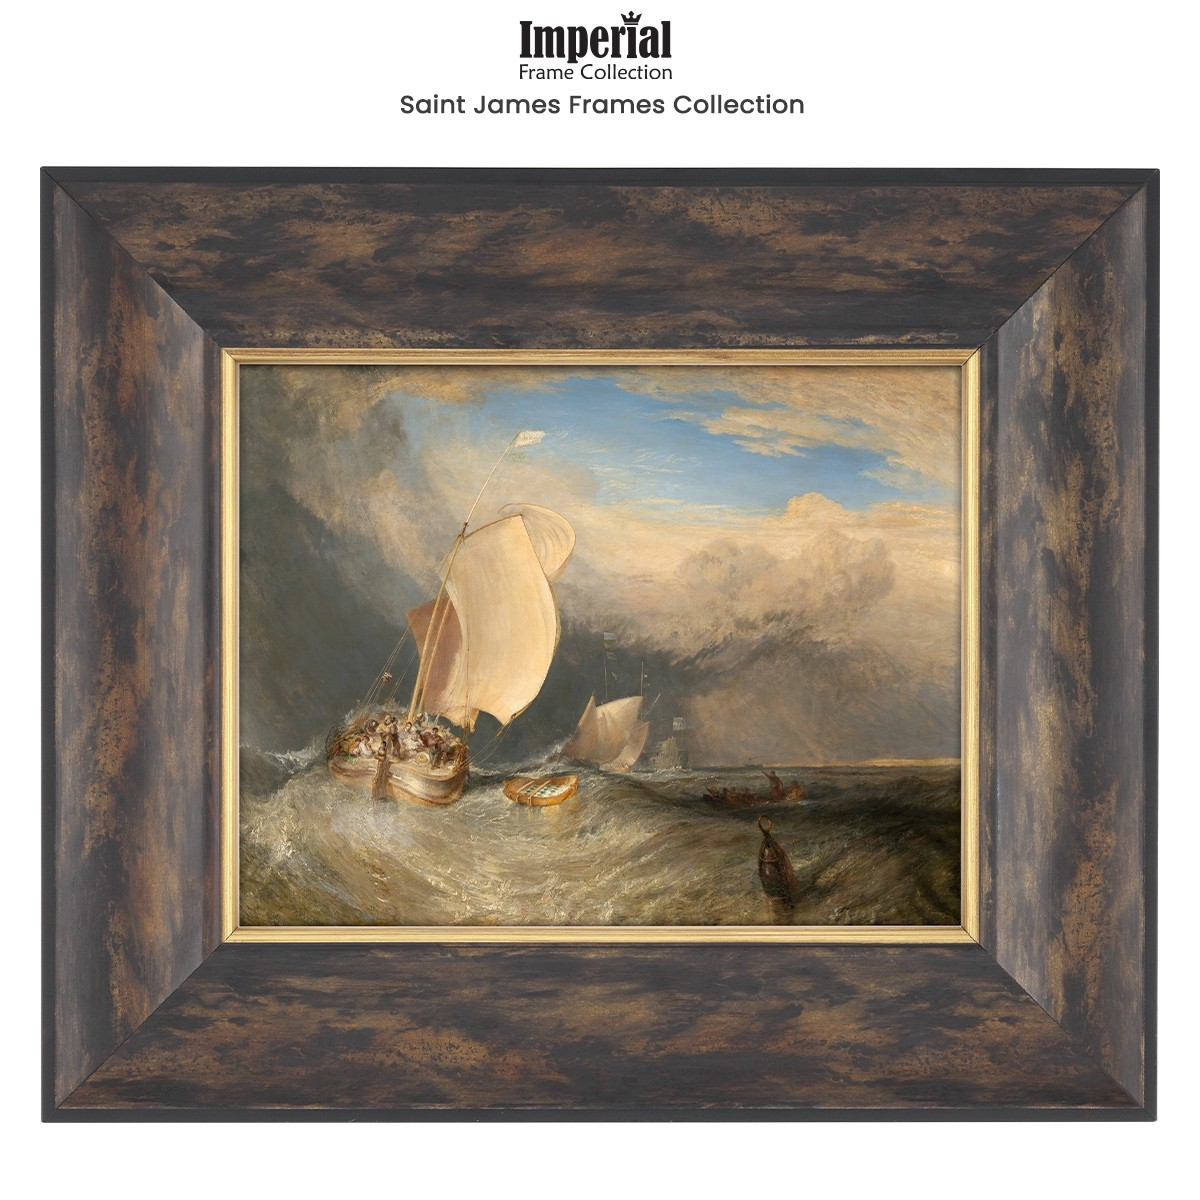 Imperial Frames Saint James Collection